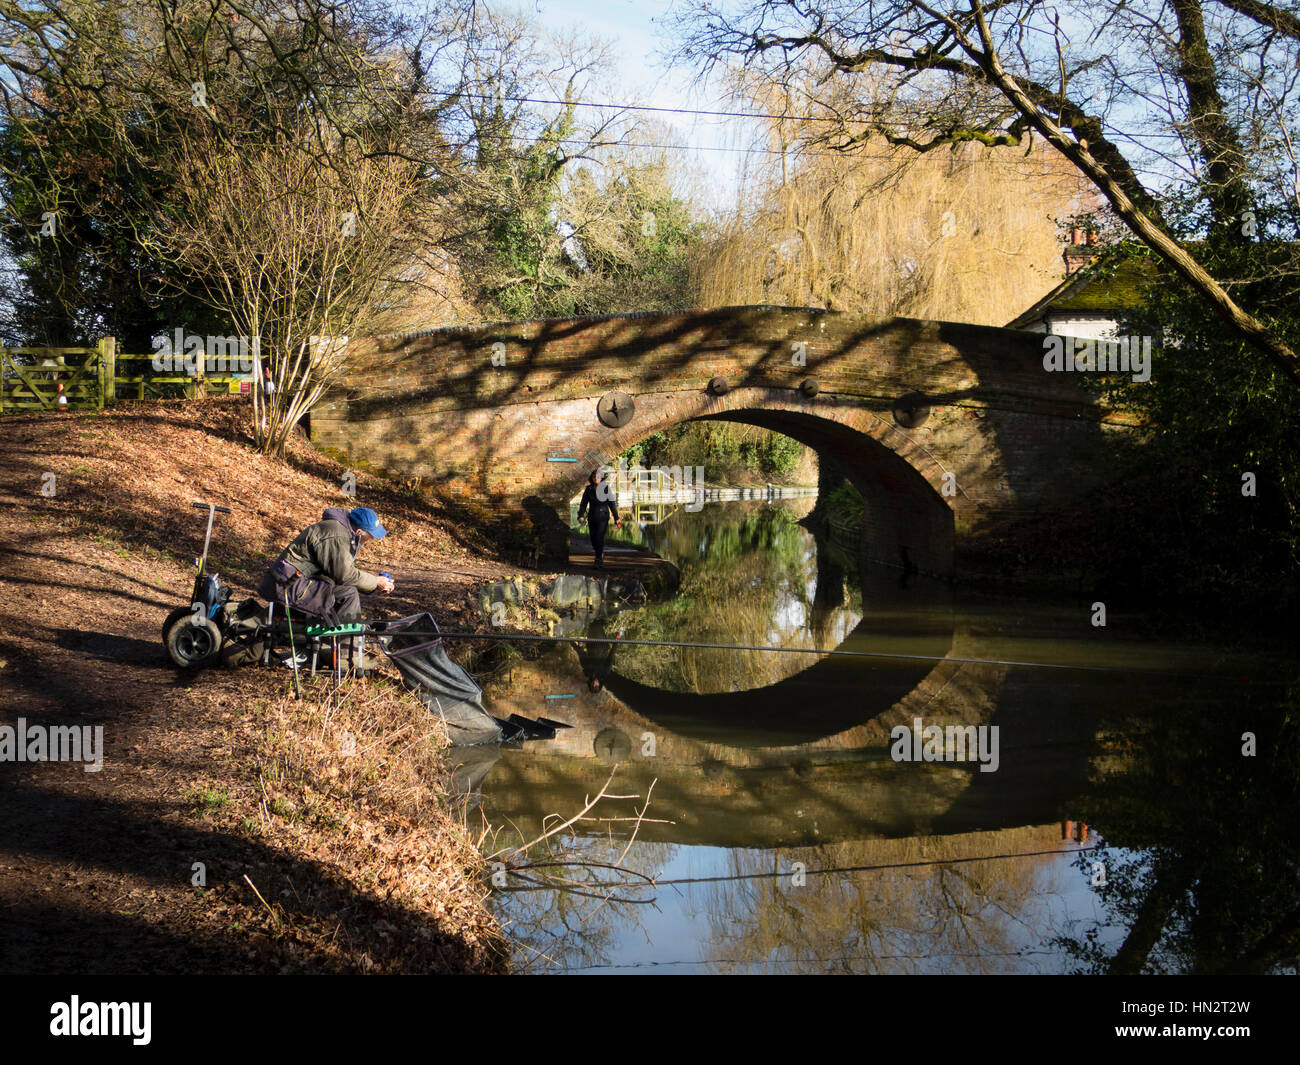 Fisherman on the Basingstoke Canal Stock Photo